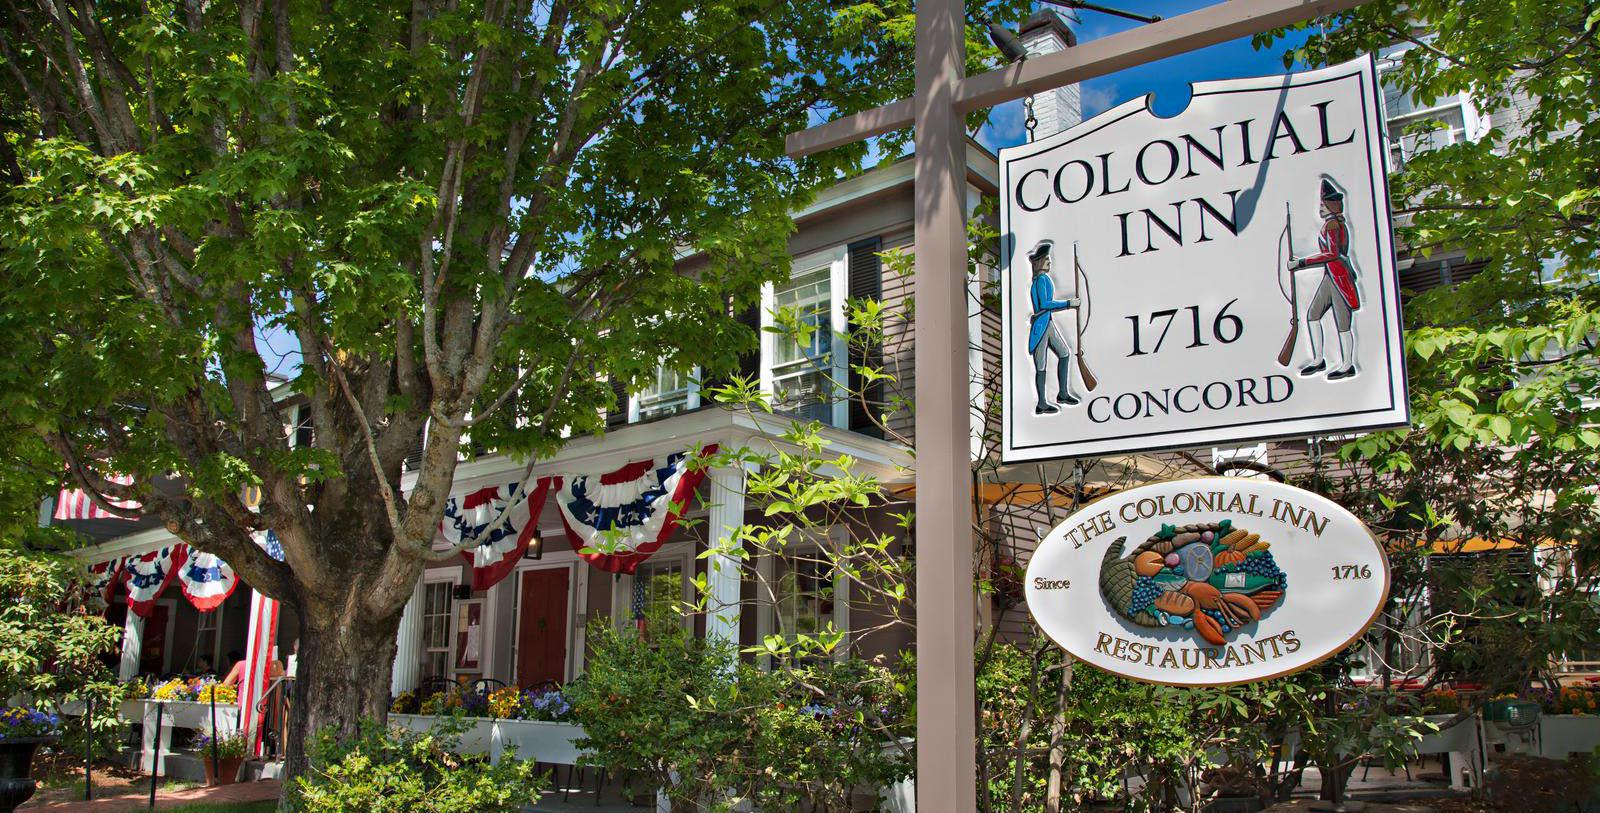 Image of Hotel Exterior at Concord's Colonial Inn, 1716, Member of Historic Hotels of America, in Concord, Massachusetts Special Offers, Discounted Rates, Families, Romantic Escape, Honeymoons, Anniversaries, Reunions